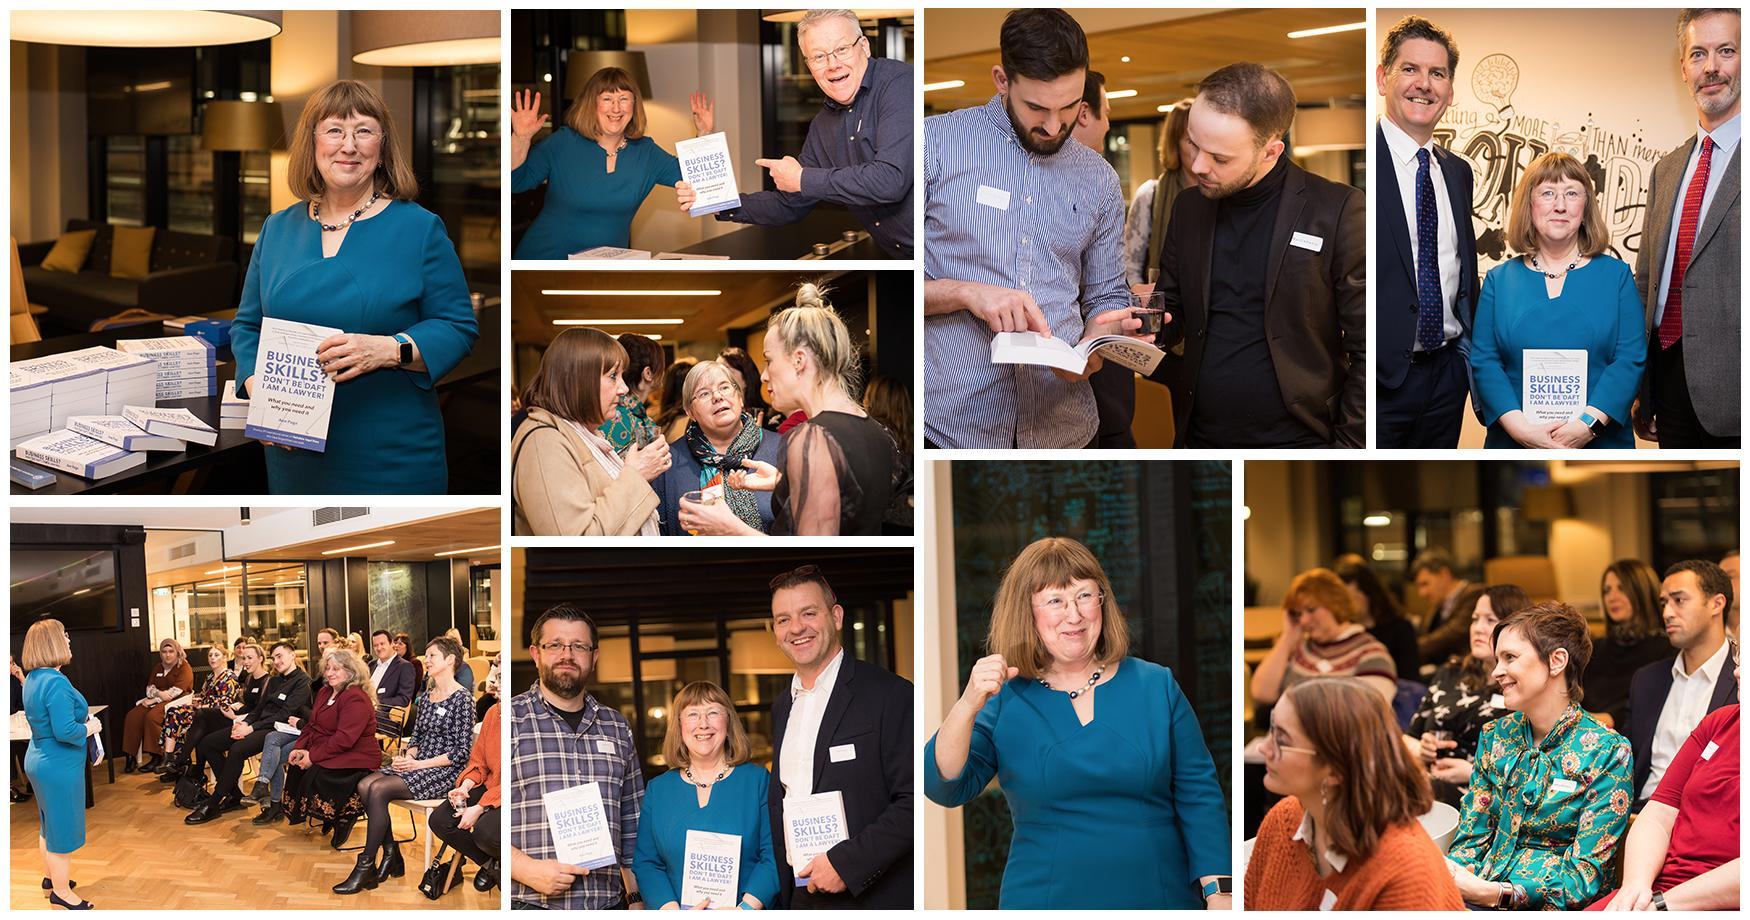 Images from book launch in Leeds